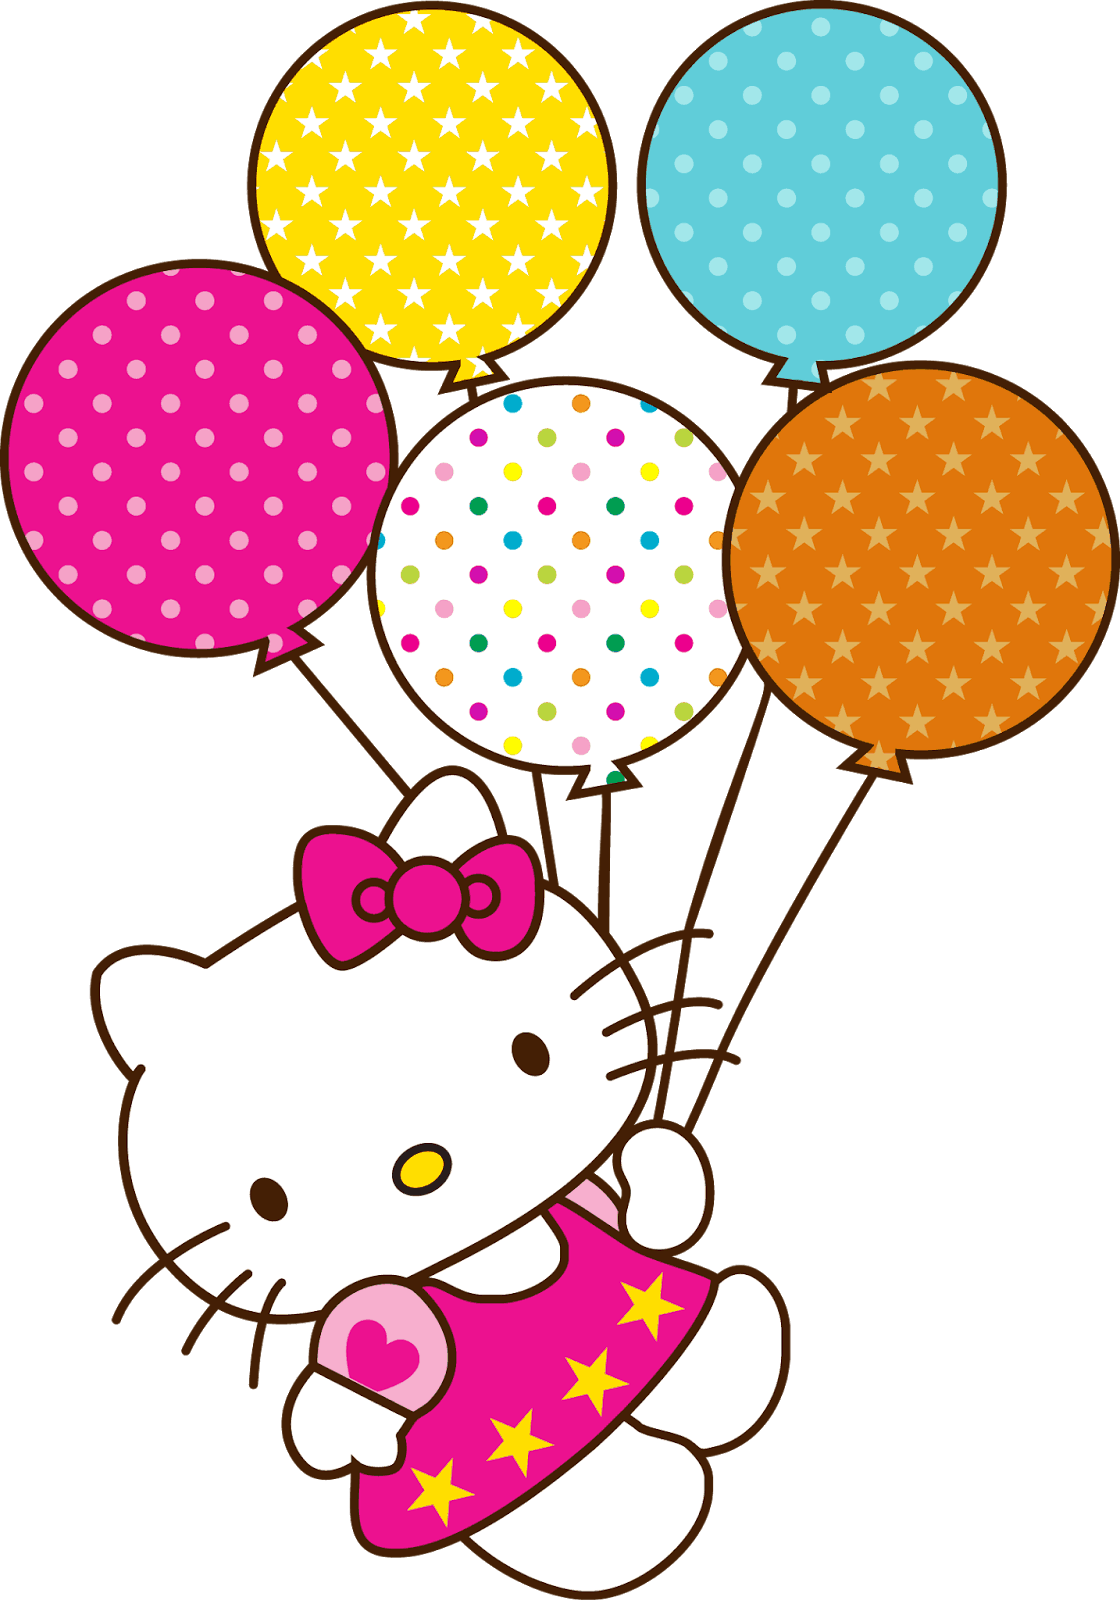 pin by tisha coetzee on graphics board 2 cats and dogs pinterest rh pinterest com Hello Kitty Birthday Party Hello Kitty SVG Birthday